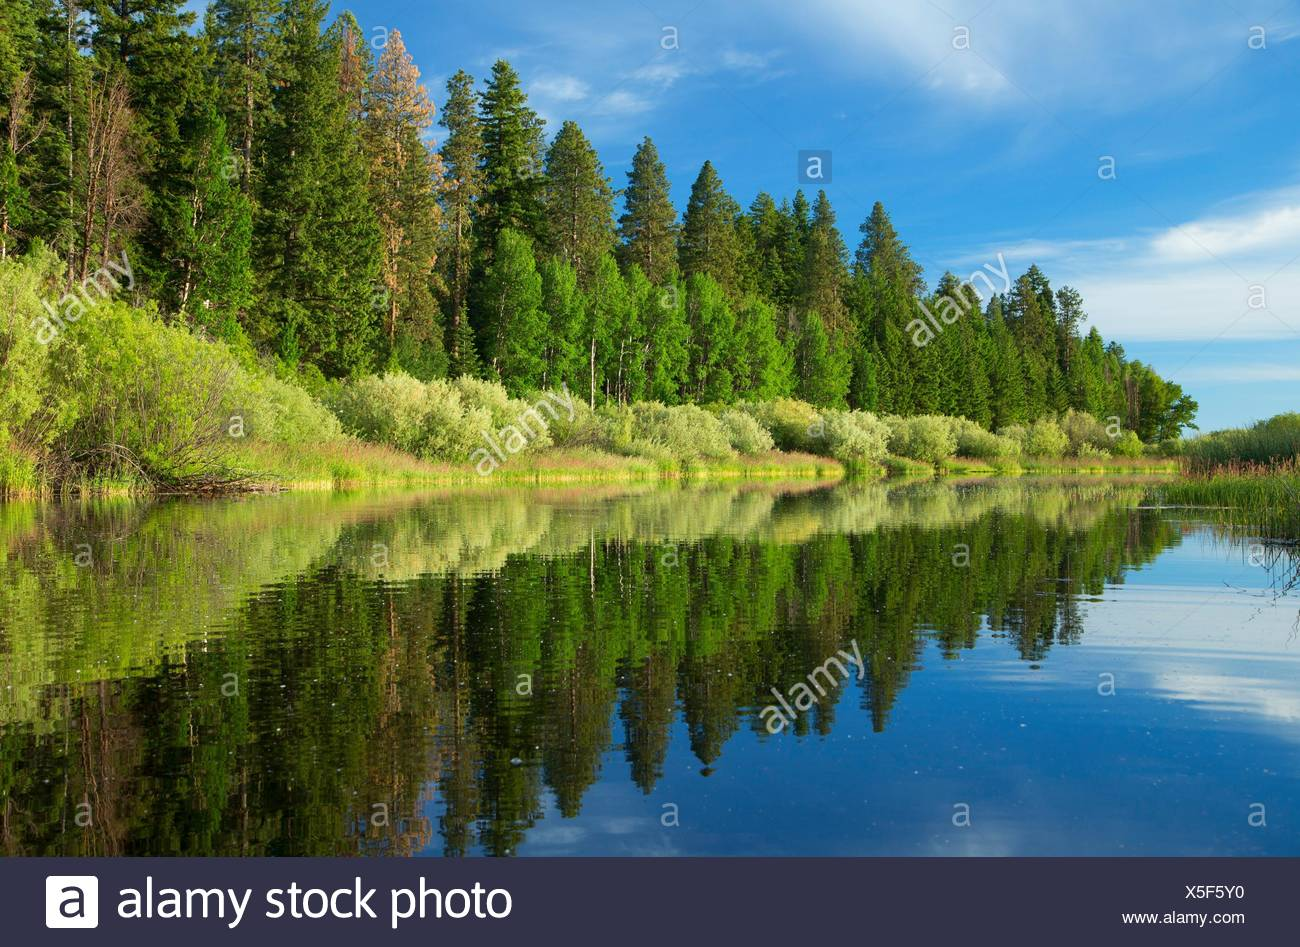 Forest reflection along Upper Klamath Canoe Trail, Winema National Forest, Volcanic Legacy Scenic Byway, Oregon. - Stock Image